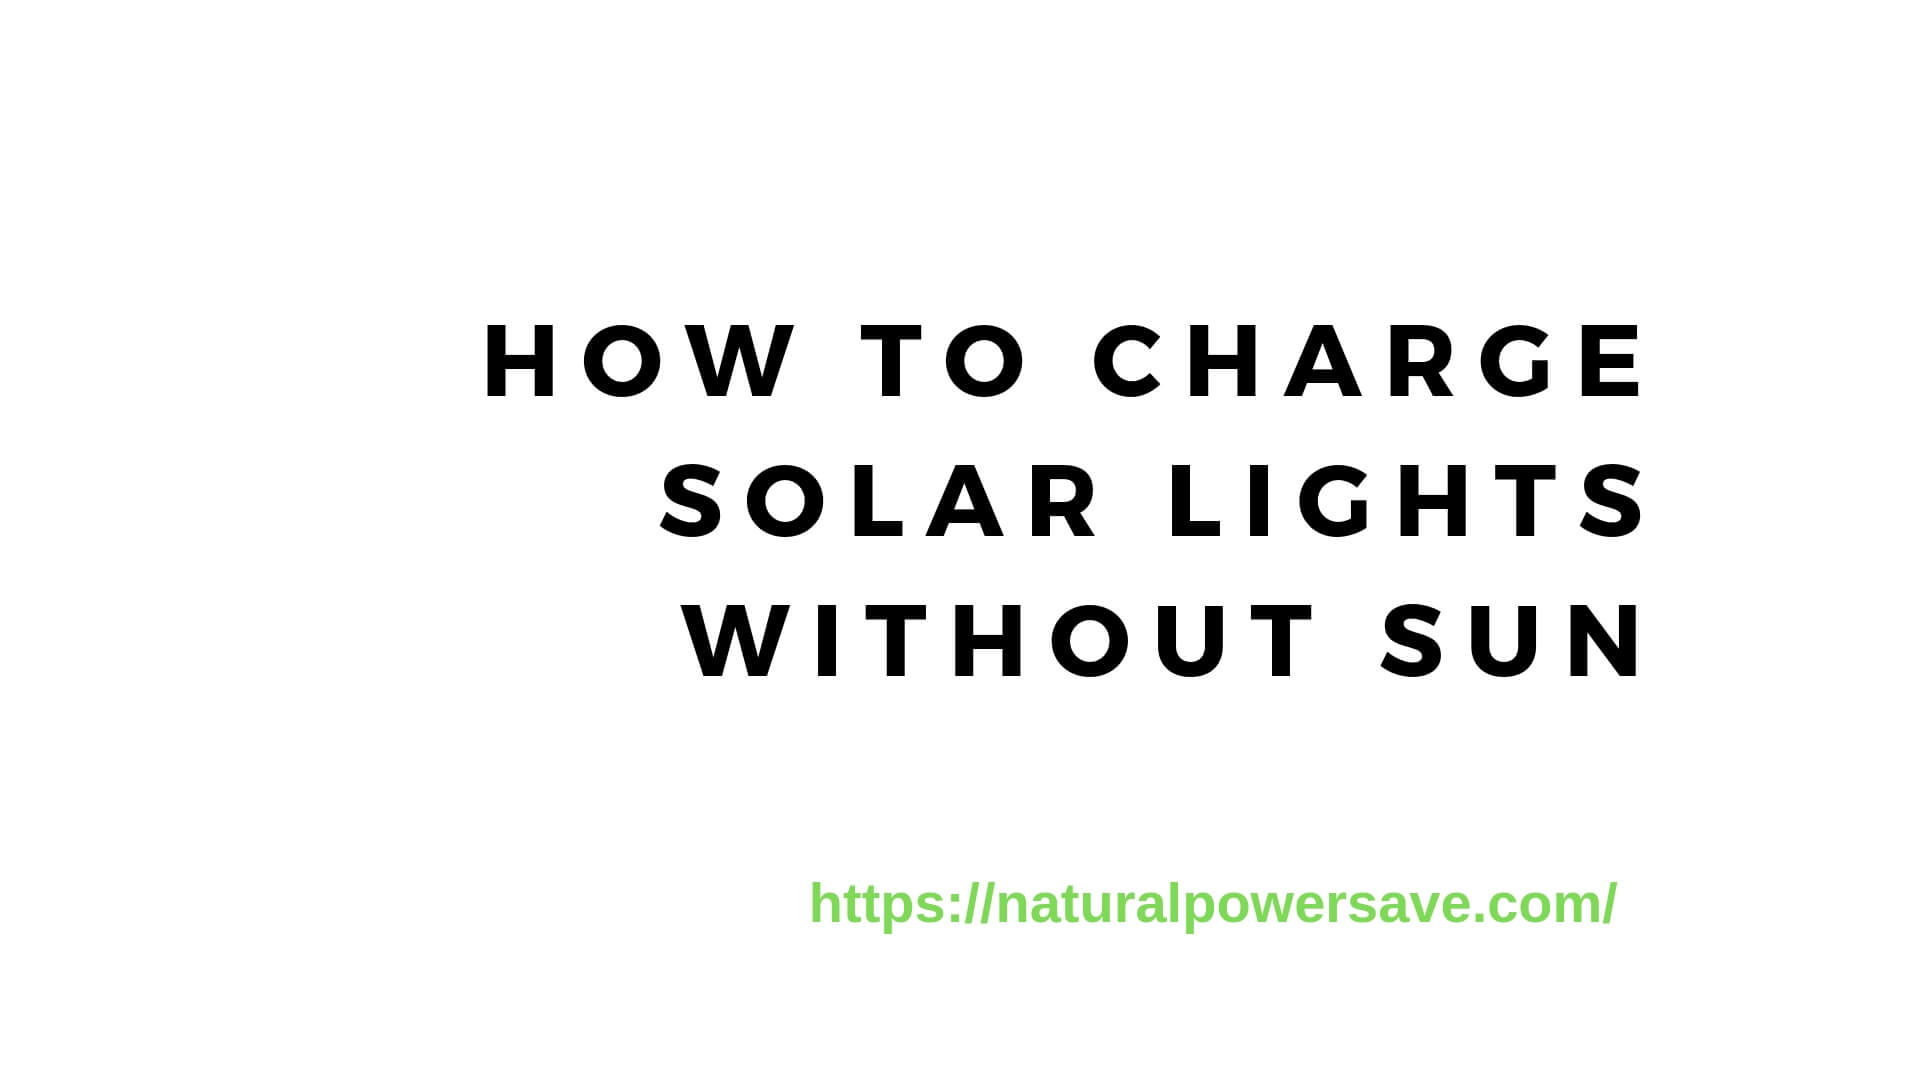 Practical Tips on How to Charge Solar Lights Without Sun